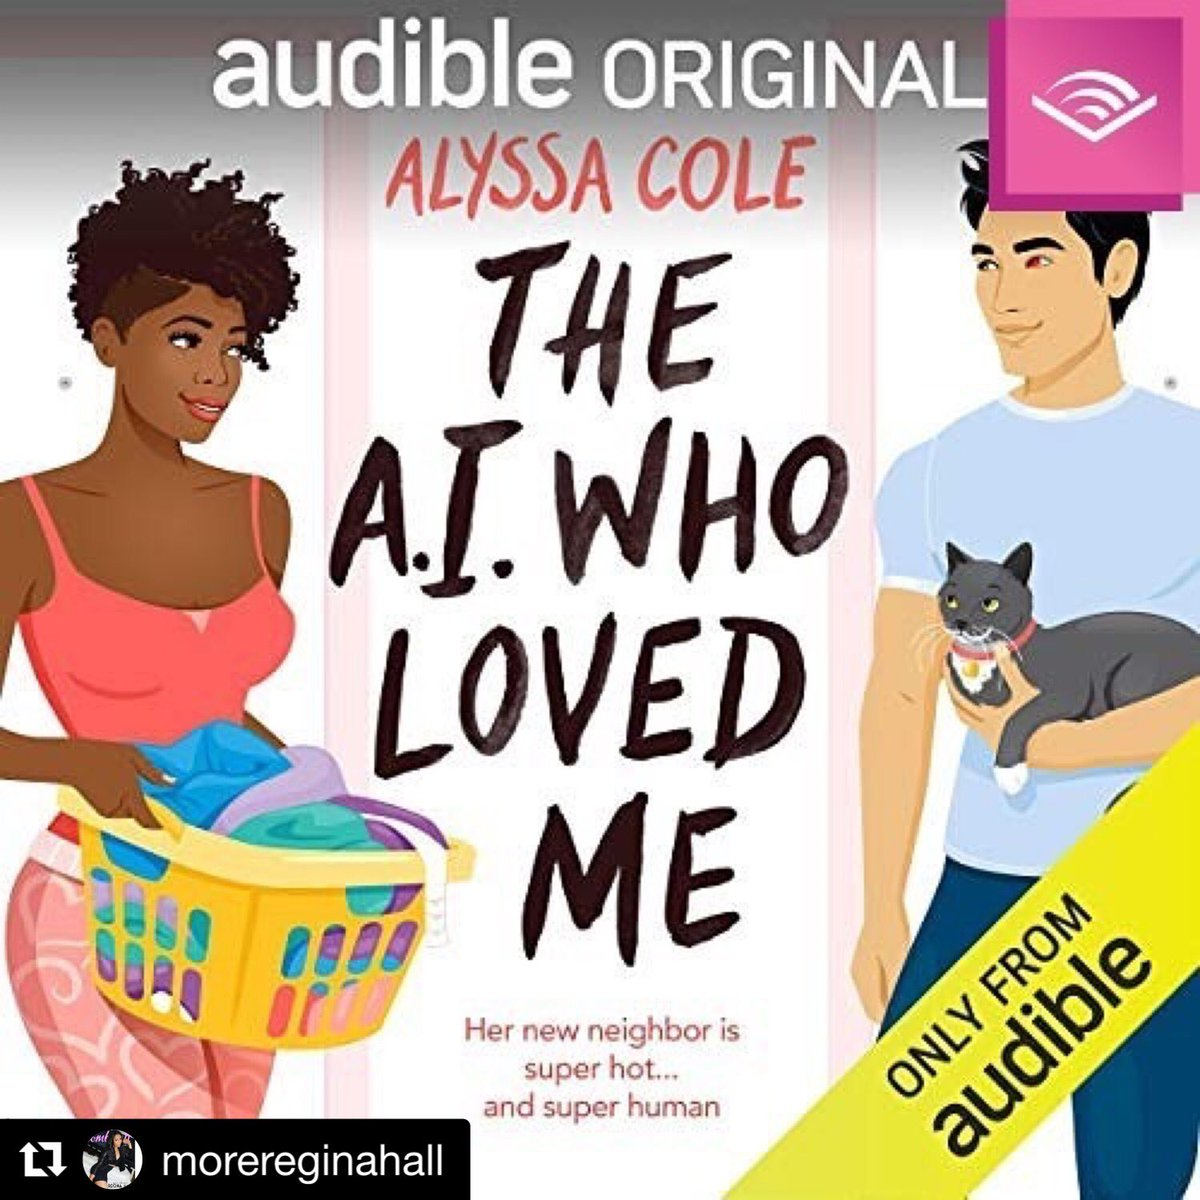 An honor & a pleasure to be included in the cast of @audible_com's BEST ROM COM OF 2019: THE A.I. WHO LOVED ME by @AlyssaColeLit! Featuring the voice talents of @MoreReginaHall, @mindykaling, & yours truly. Check it out! #HearTheYear #AudibleEscape #Audiobooks #KingOfVO #Grateful